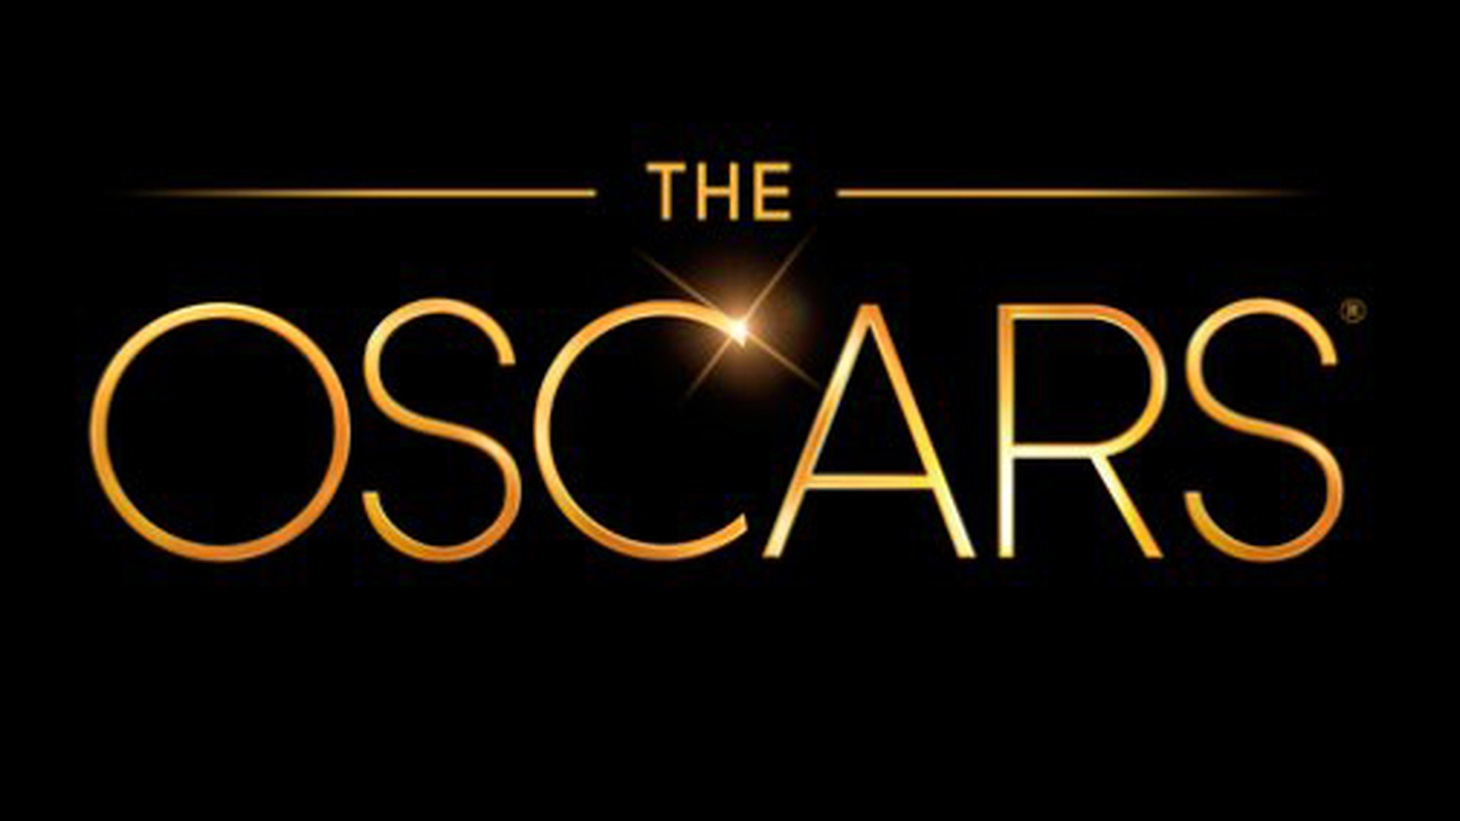 Kim Masters and Matt Belloni met up Monday morning to break down what happened at the Oscars. We're dropping this special banter here, but we'll be back with another new episode next week!